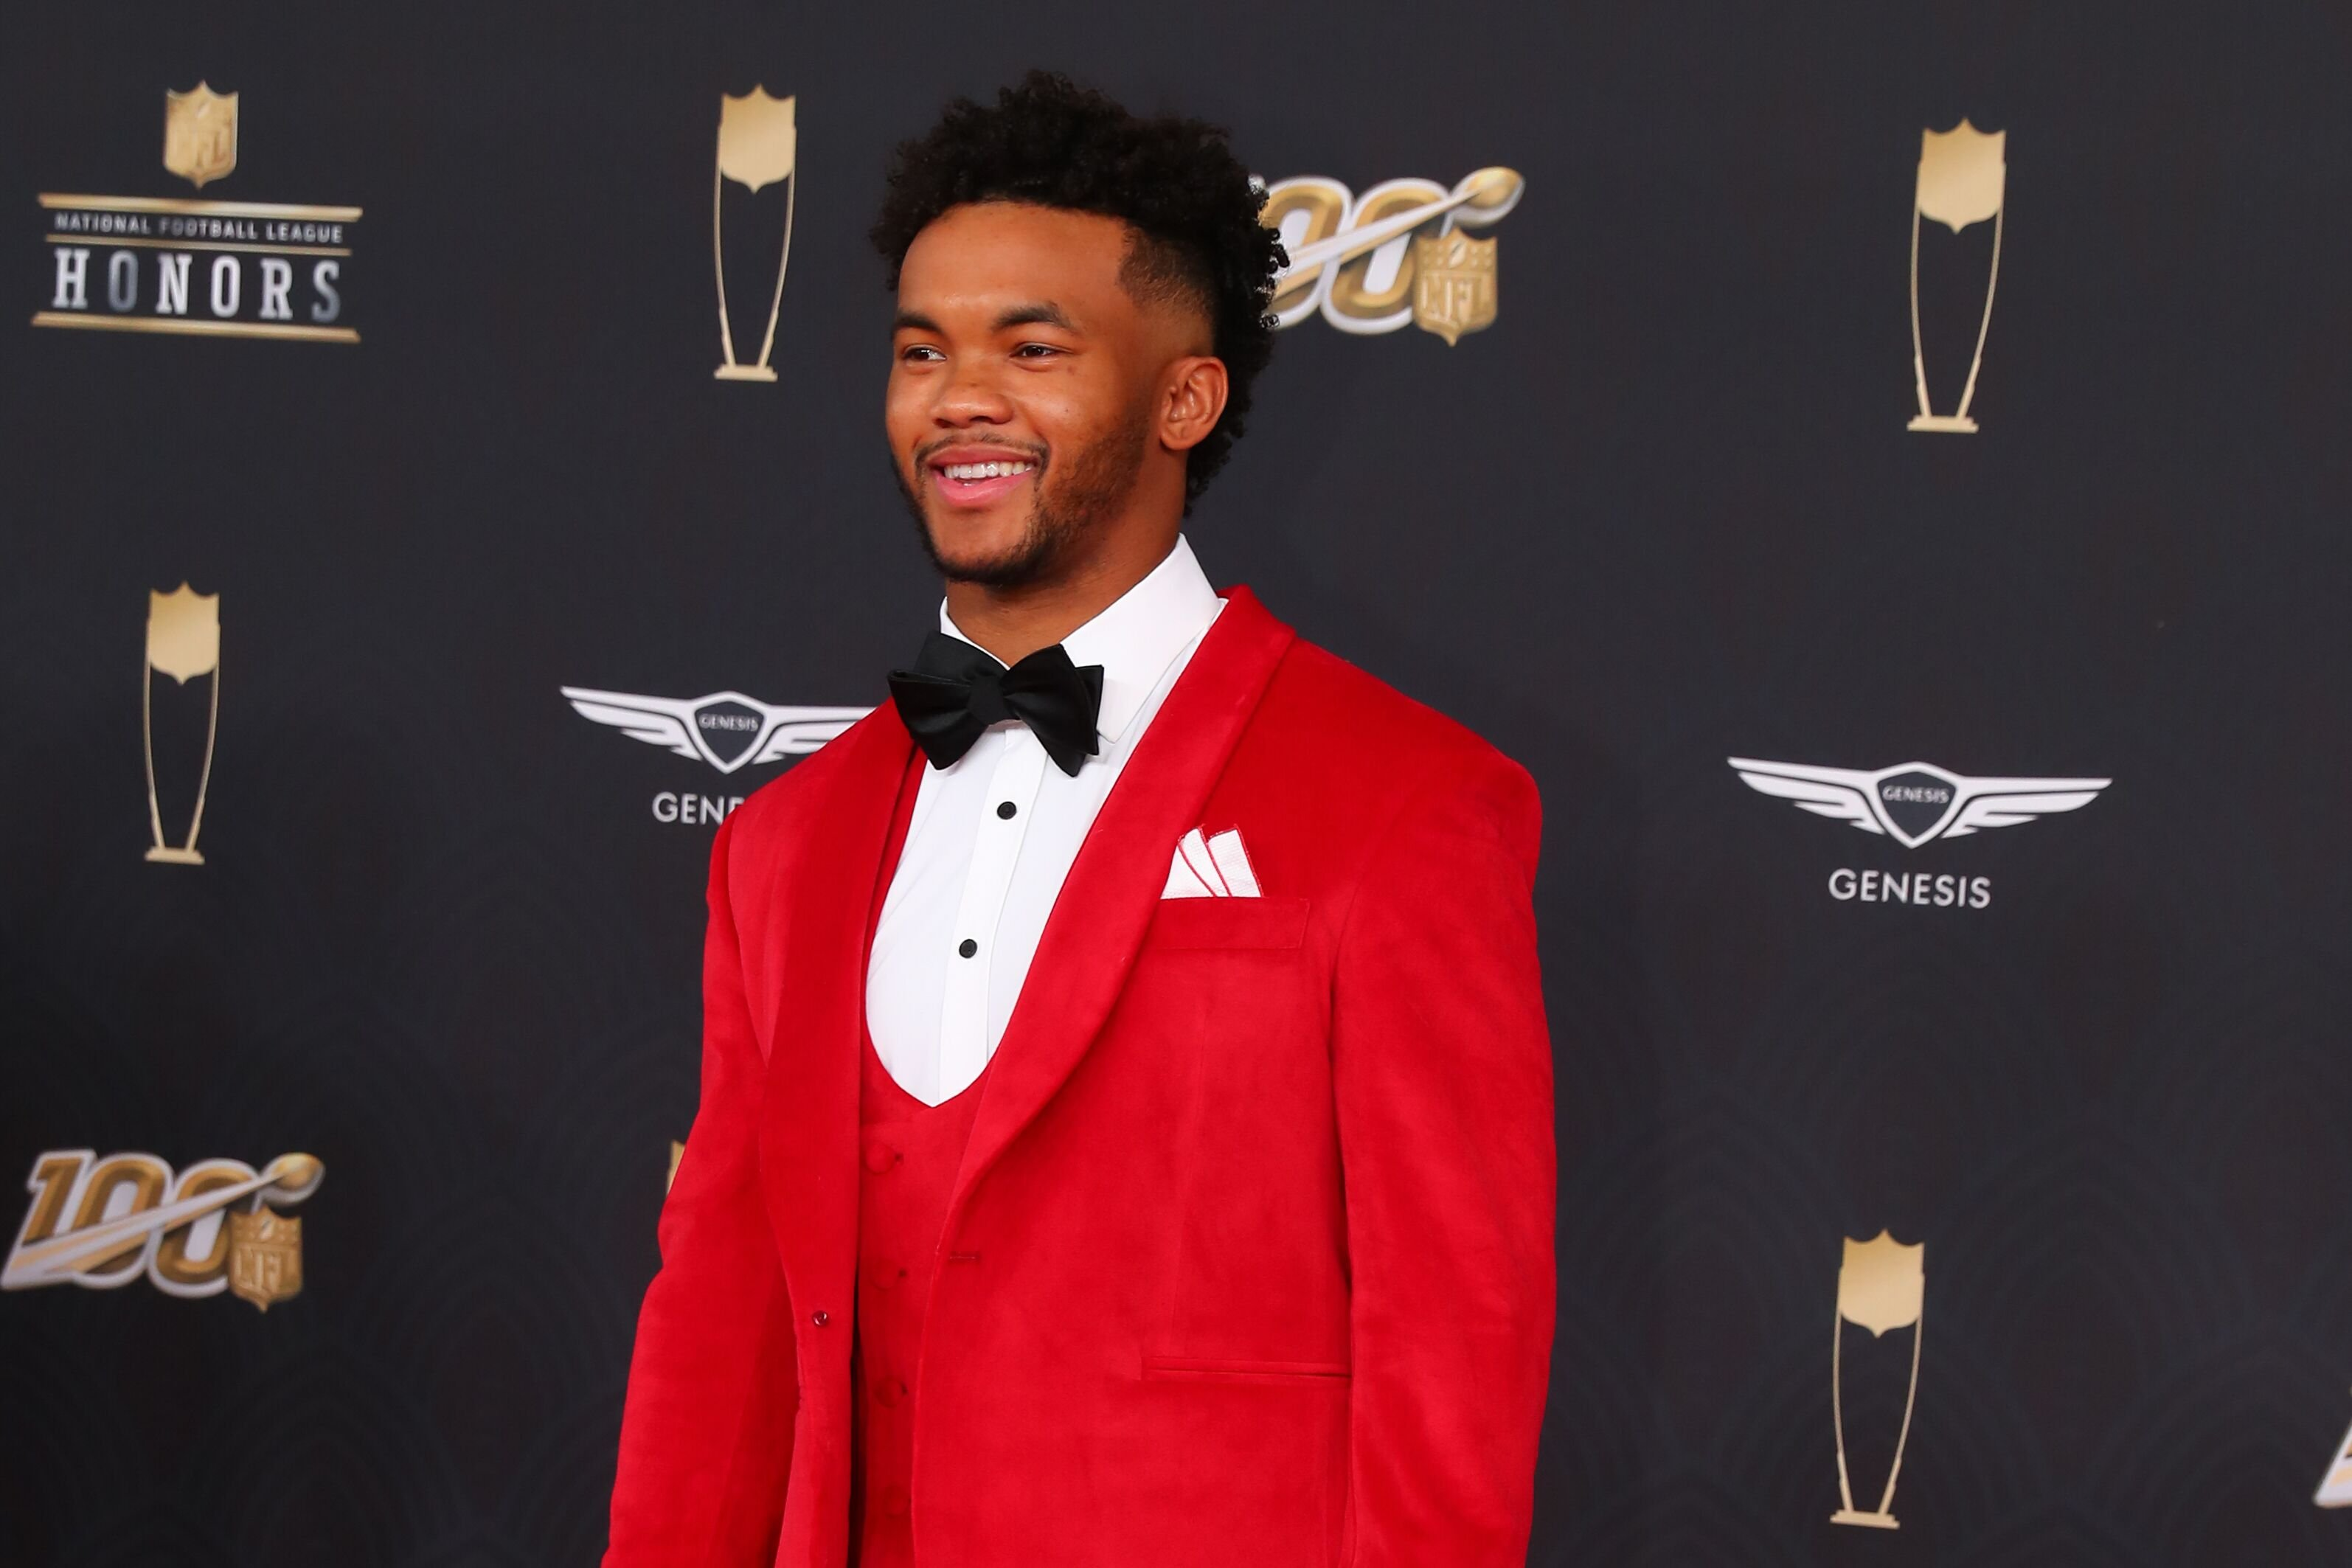 Kyler Murray poses on the Red Carpet poses prior to the NFL Honors on February 1, 2020 at the Adrienne Arsht Center.   Source: Getty Images